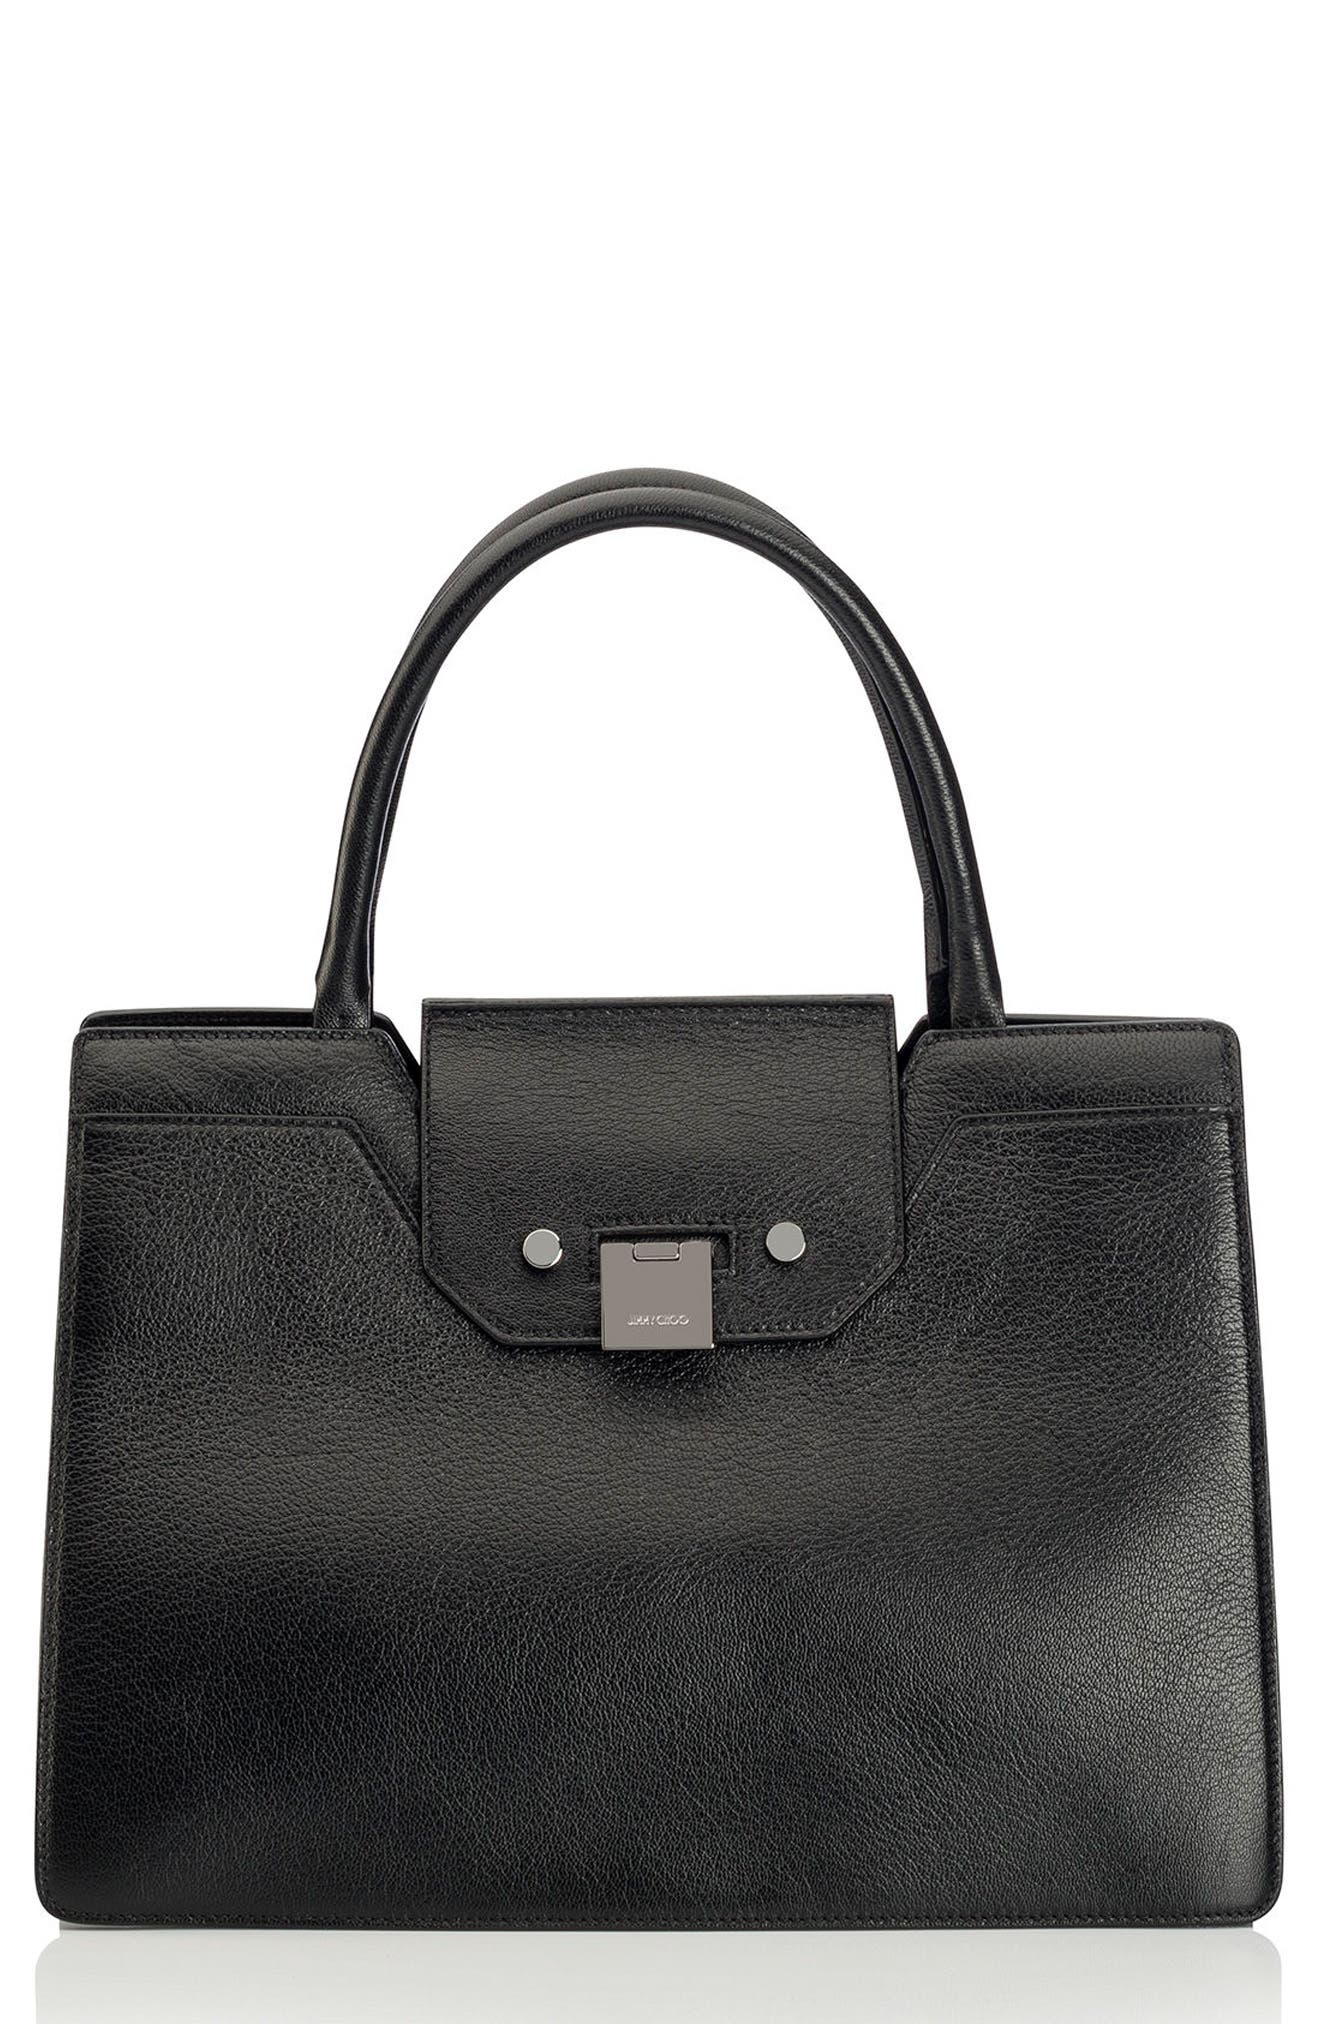 Rebel Leather Tote,                             Main thumbnail 1, color,                             010